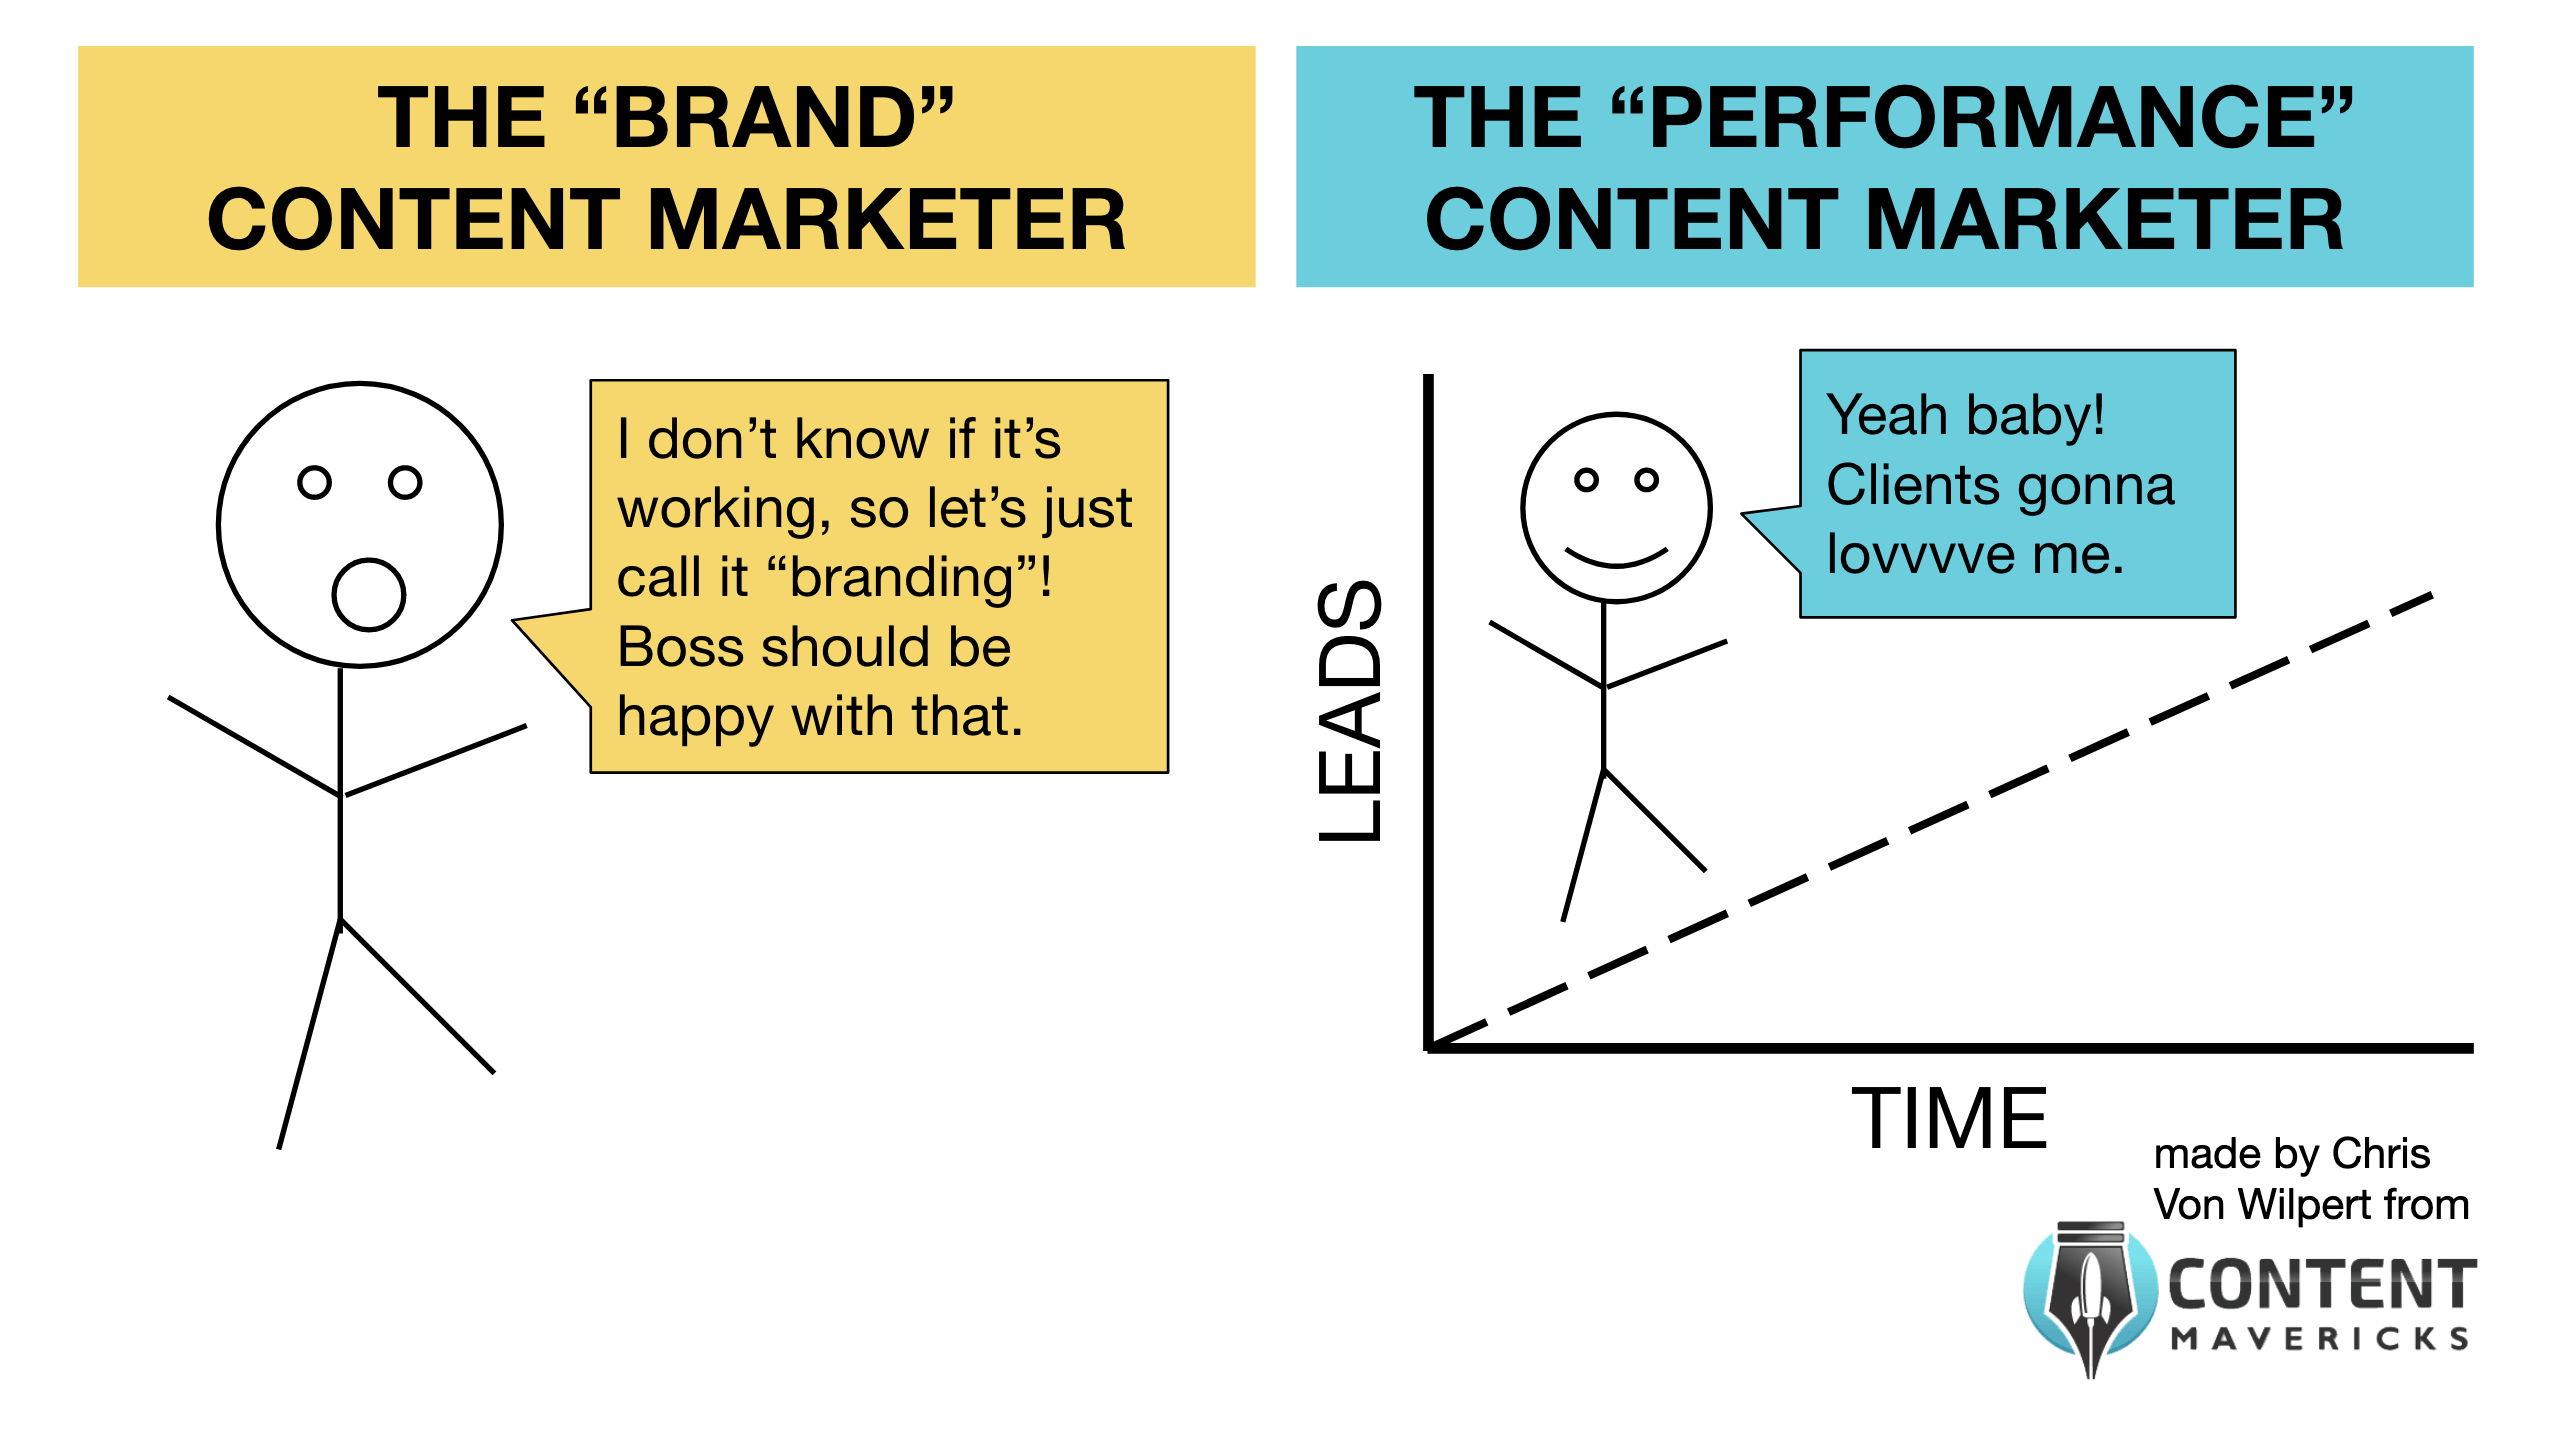 brand performance content marketer image